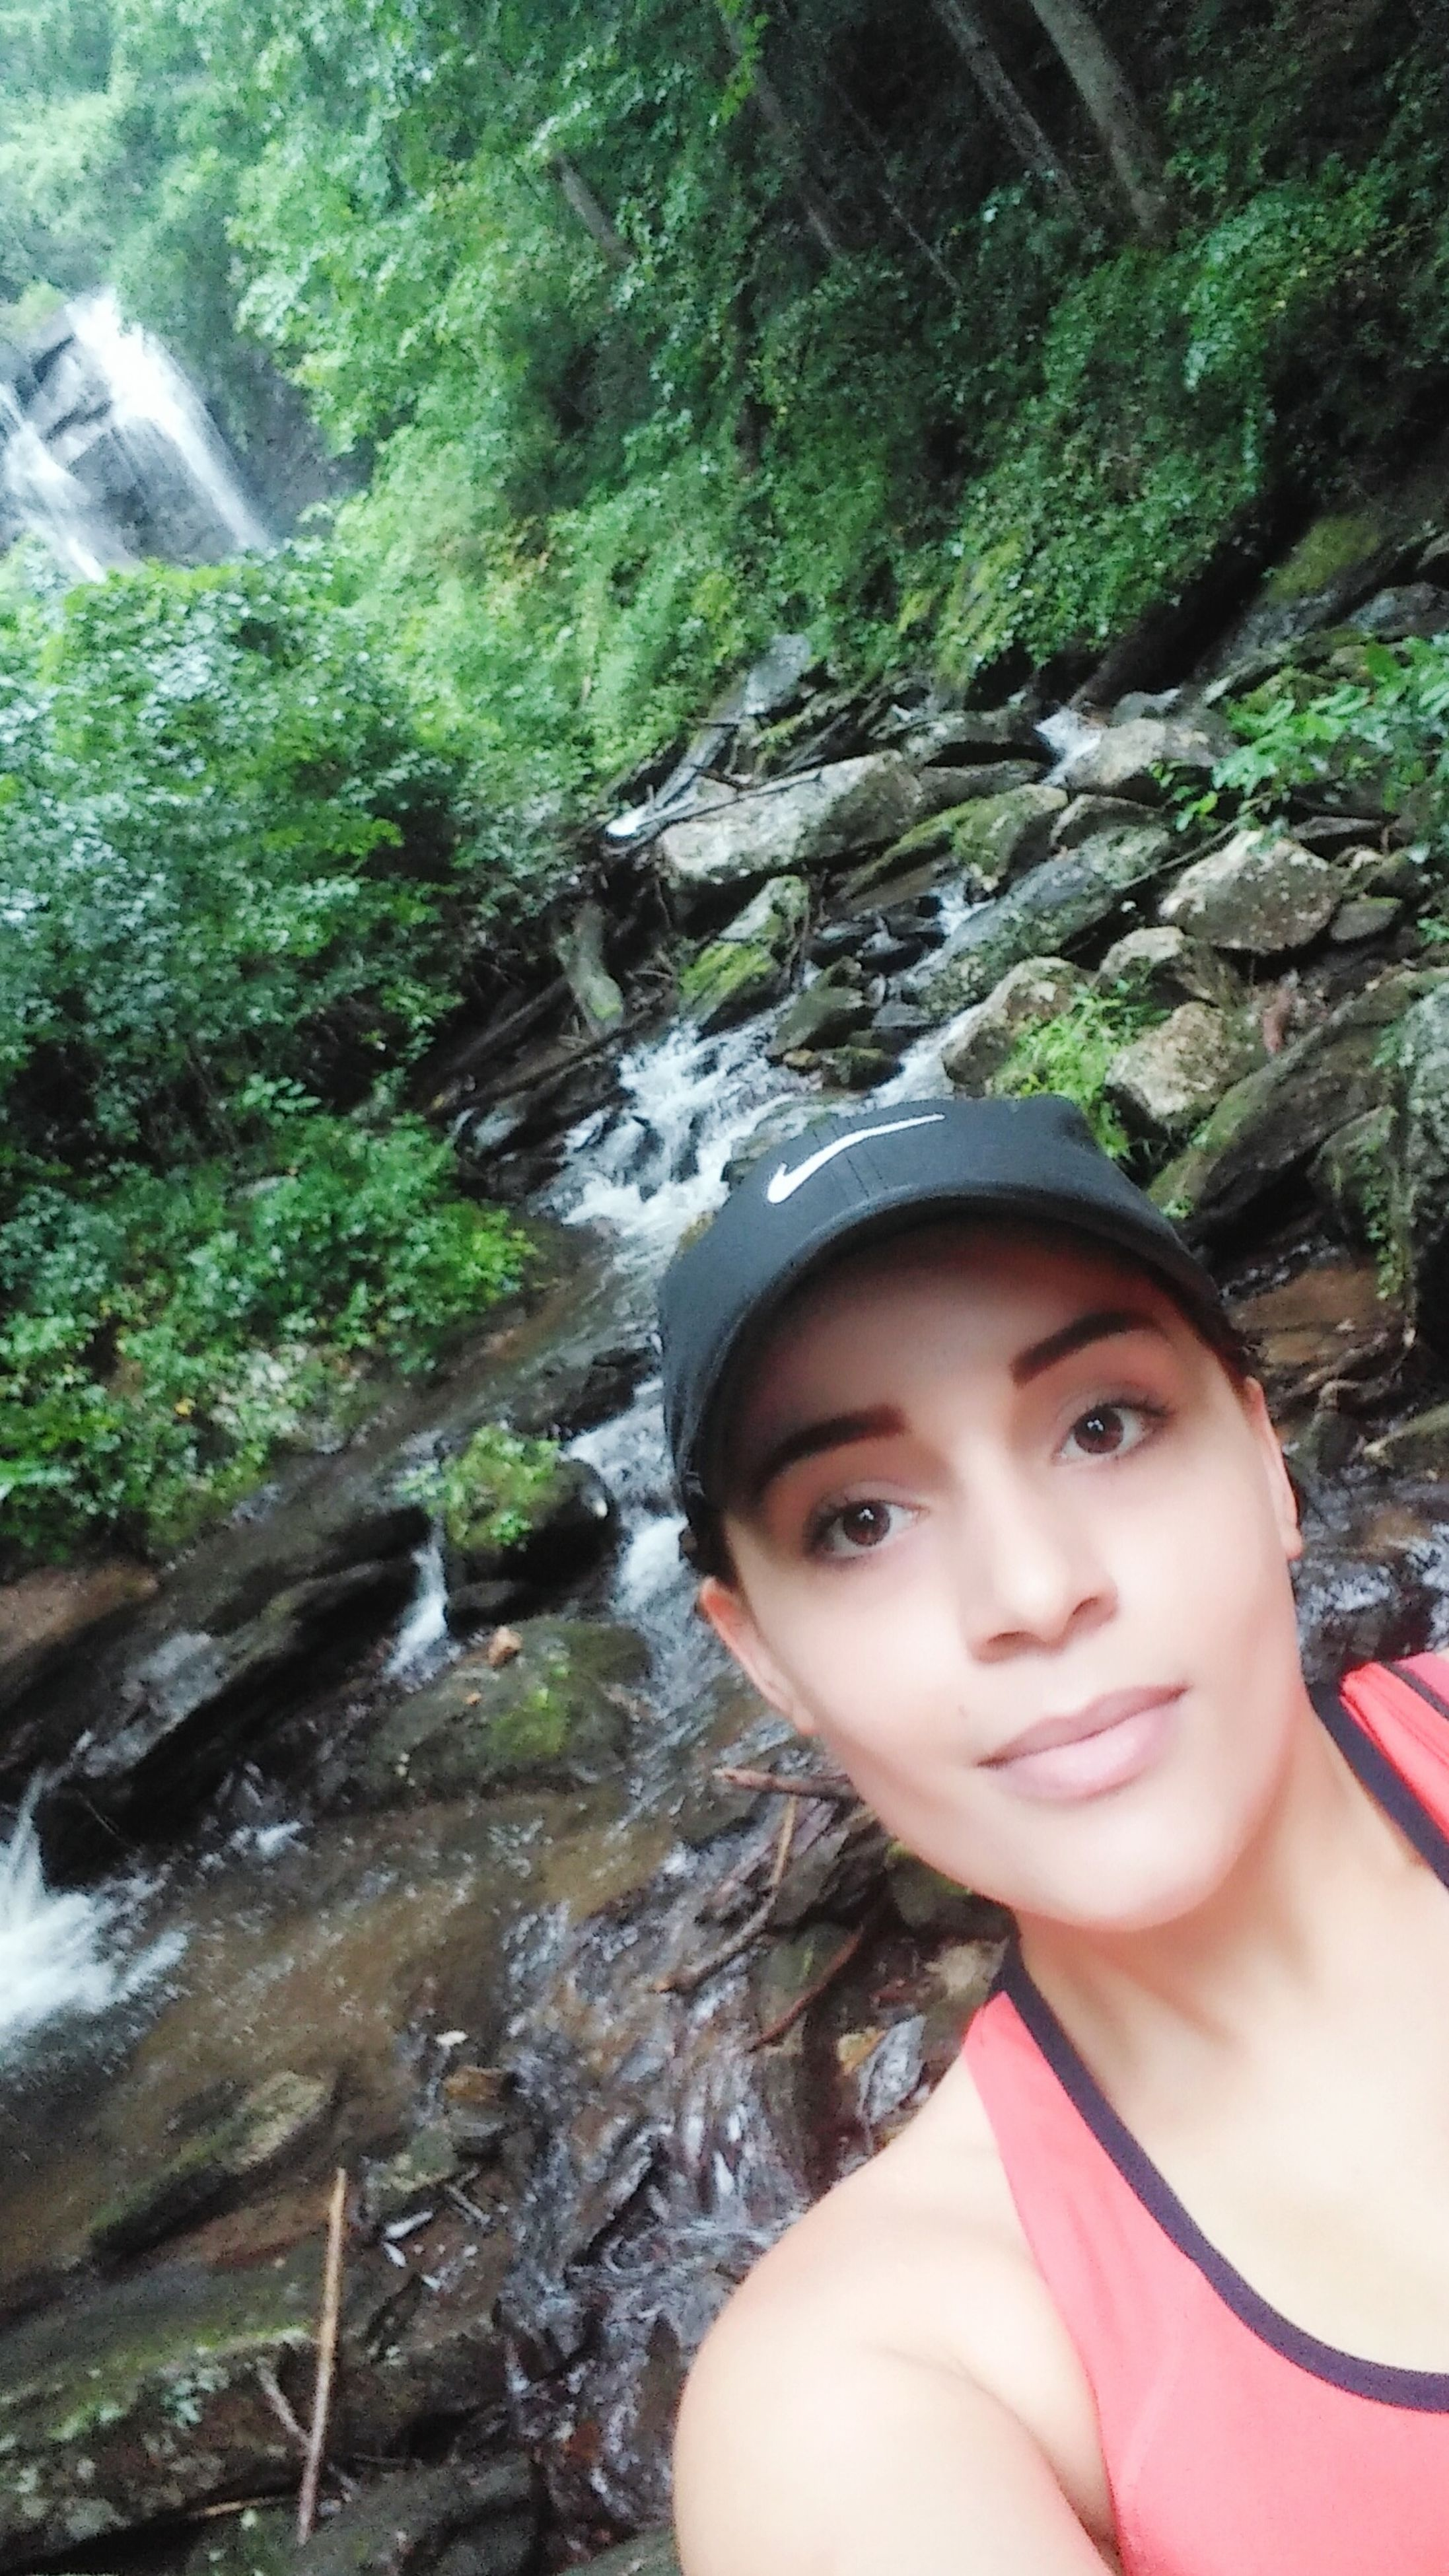 leisure activity, looking at camera, lifestyles, headshot, portrait, young adult, smiling, front view, young women, forest, tree, person, day, water, scenics, nature, outdoors, black hair, content, green color, focus on foreground